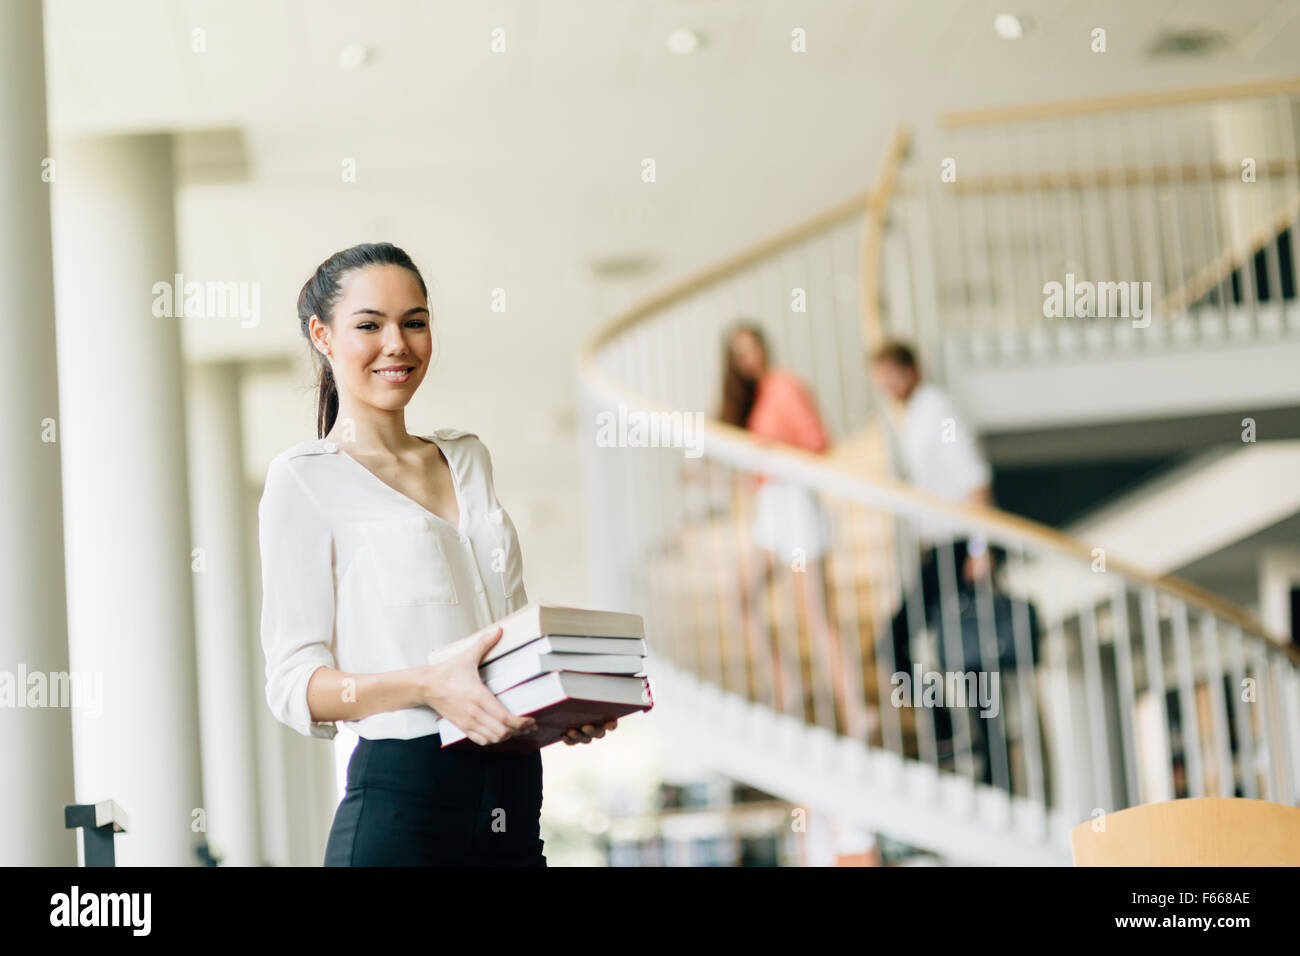 Beautiful woman holding books and smiling in a modern library - Stock Image